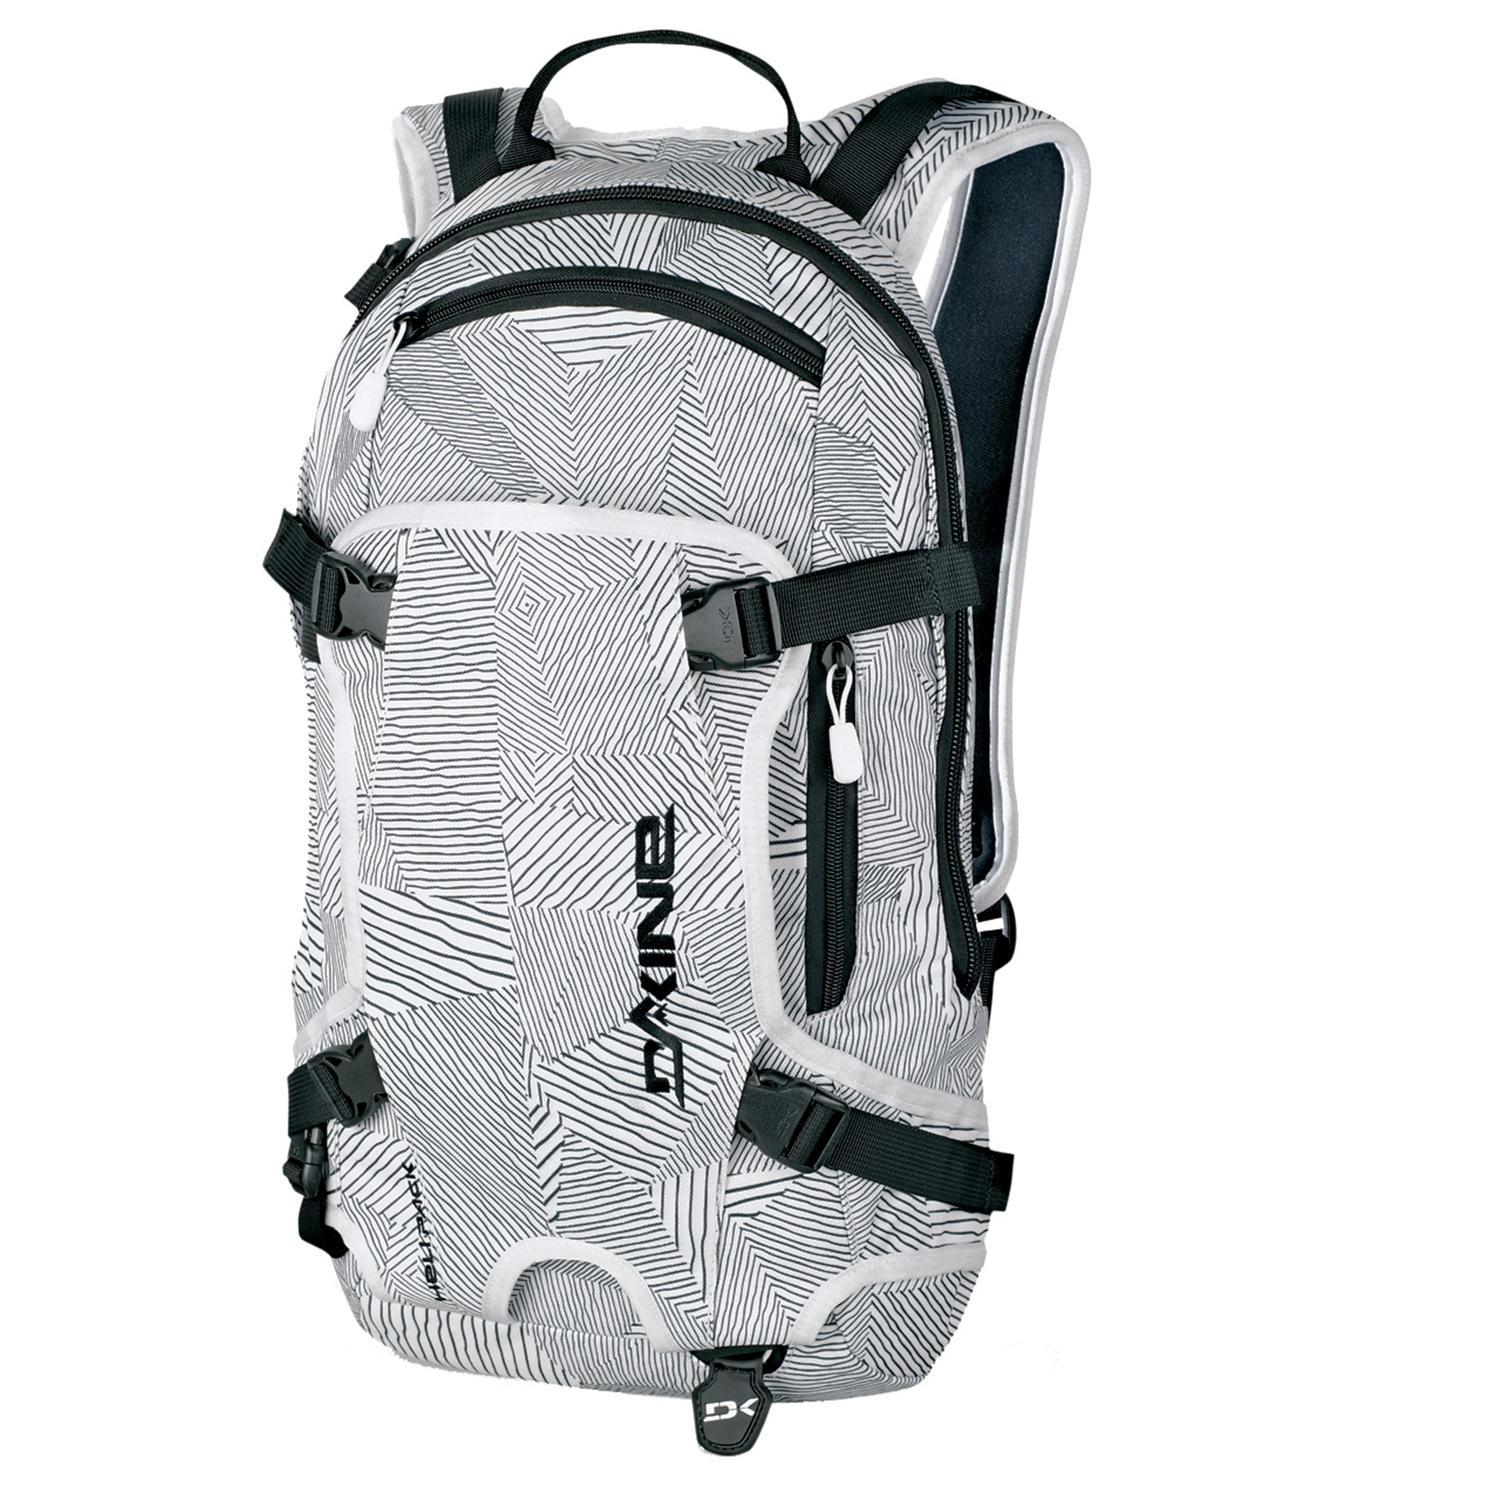 dakine heli 11l with Search on 1490 Dakine Backpacks Nz likewise Pn 42282 additionally Search also Dakine Heli Pro Dlx Backpack 20l besides Watch.